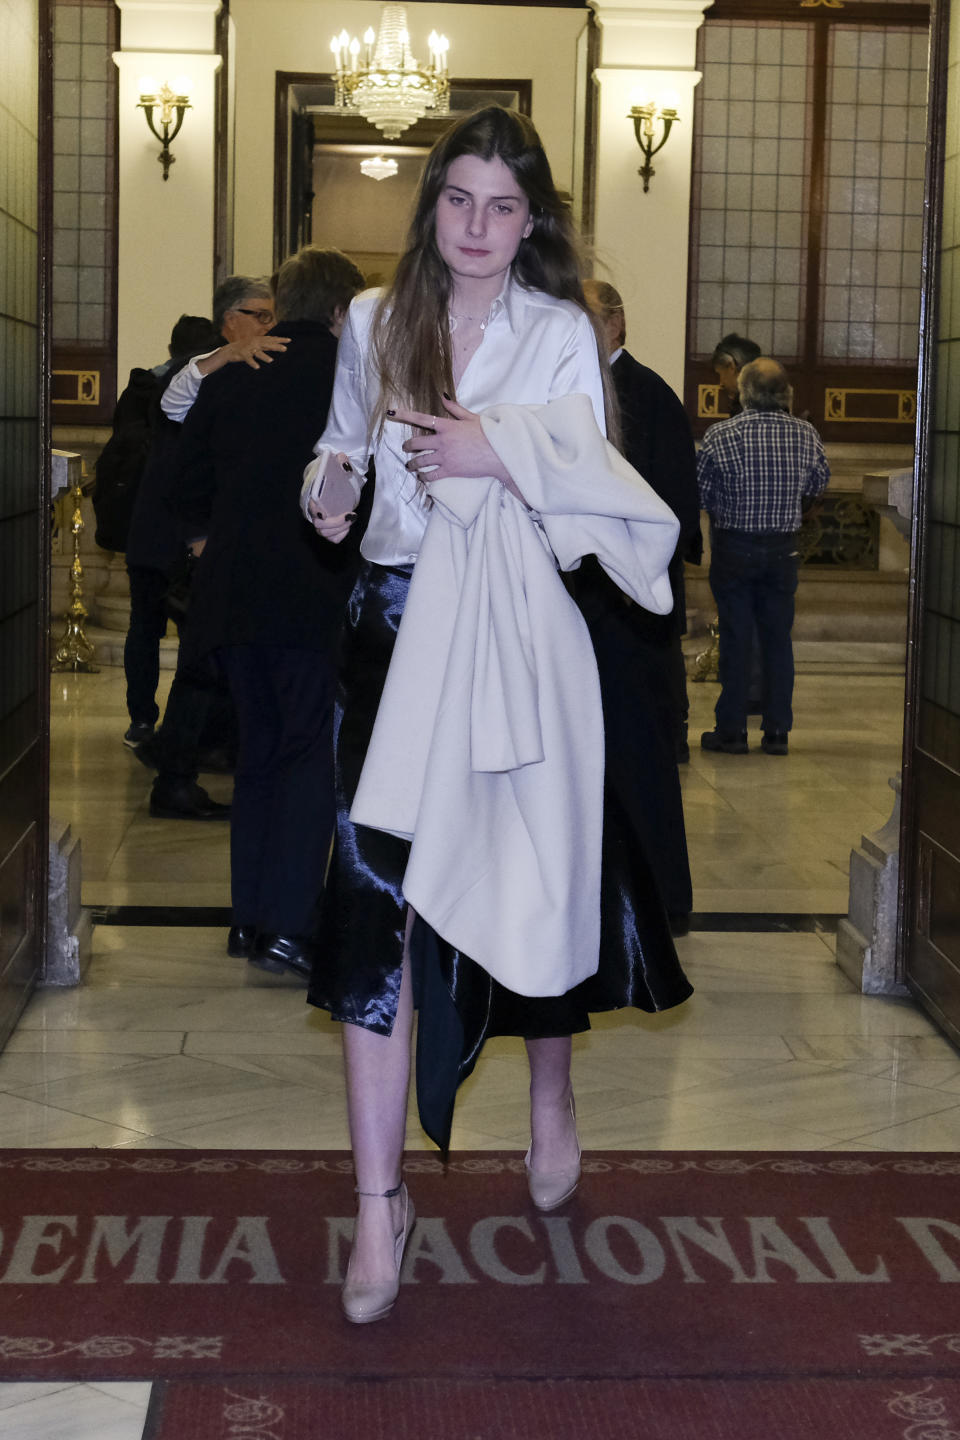 Amina Martinez de Irujo attends the event of Cayetano Martinez de Irujo receives the honor medal of the Royal National Academy of Medicine on February 26, 2020 in Madrid, Spain. (Photo by Oscar Gonzalez/NurPhoto via Getty Images)